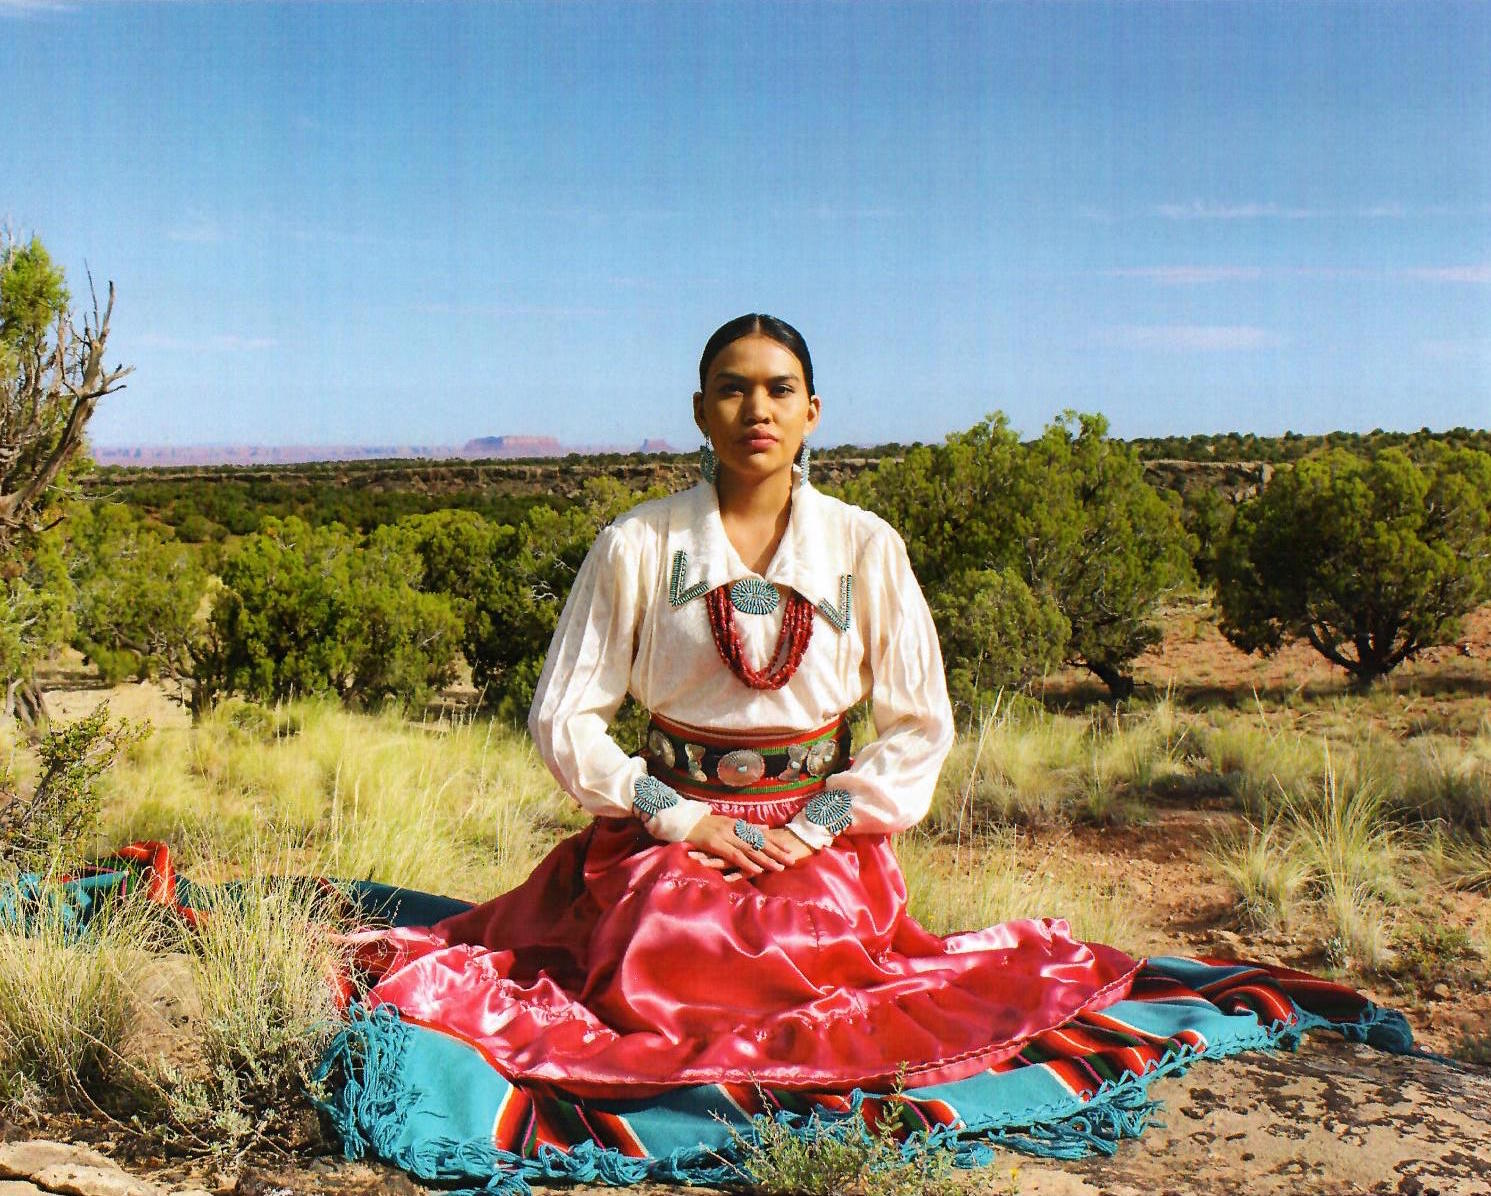 Navajo People - The Diné